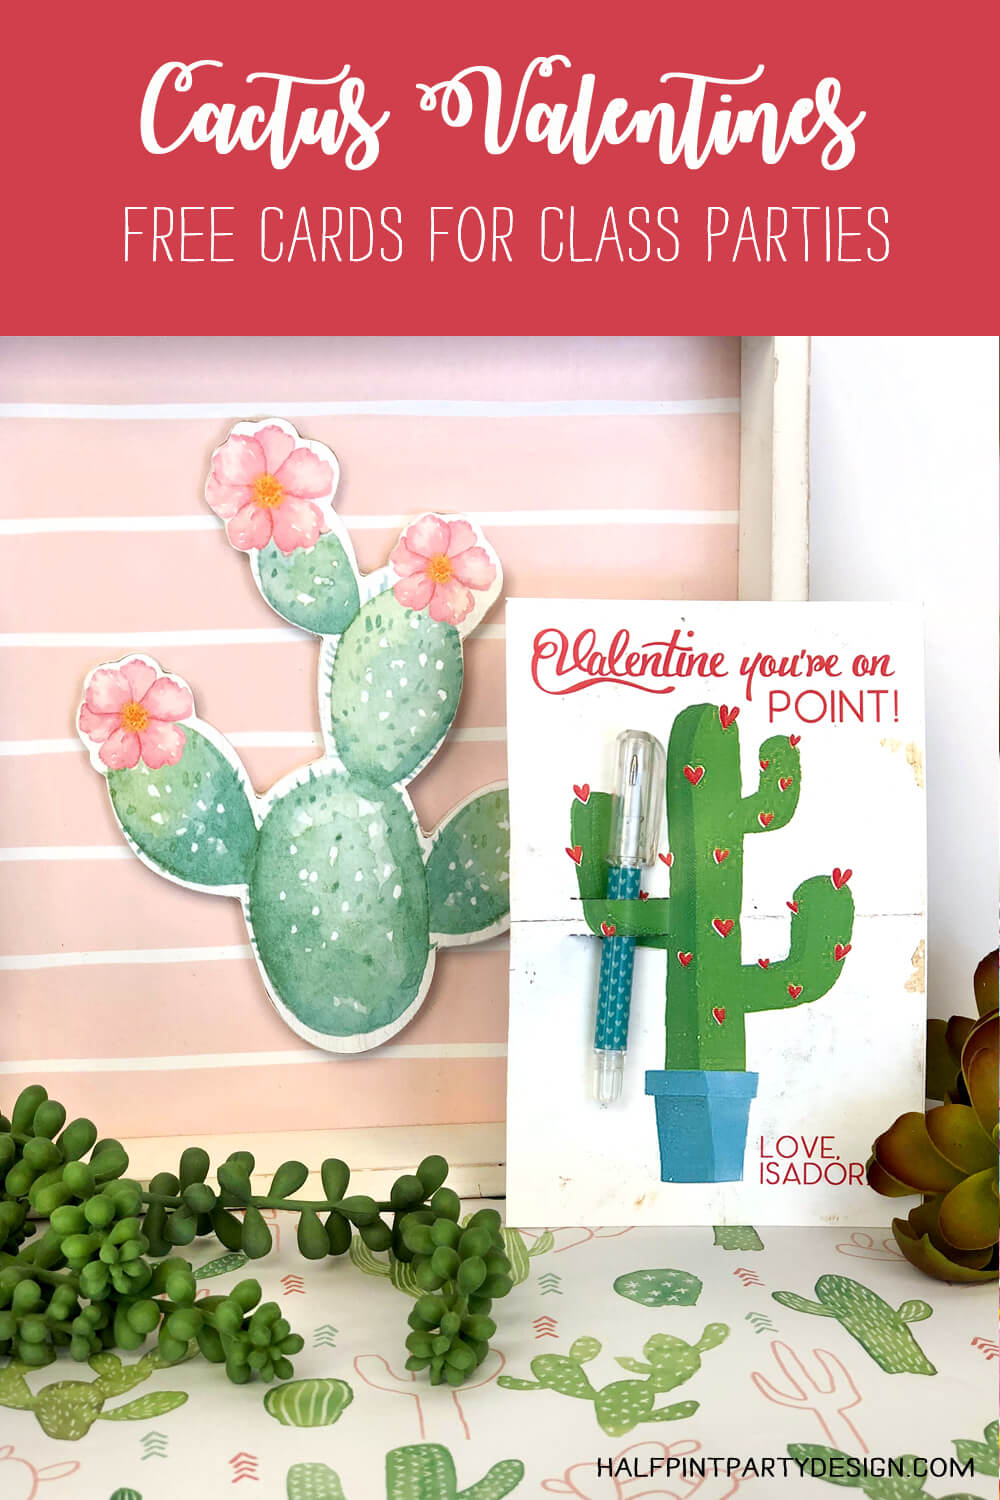 Cactus valentines day card with mini ball point pen in front of cactus art